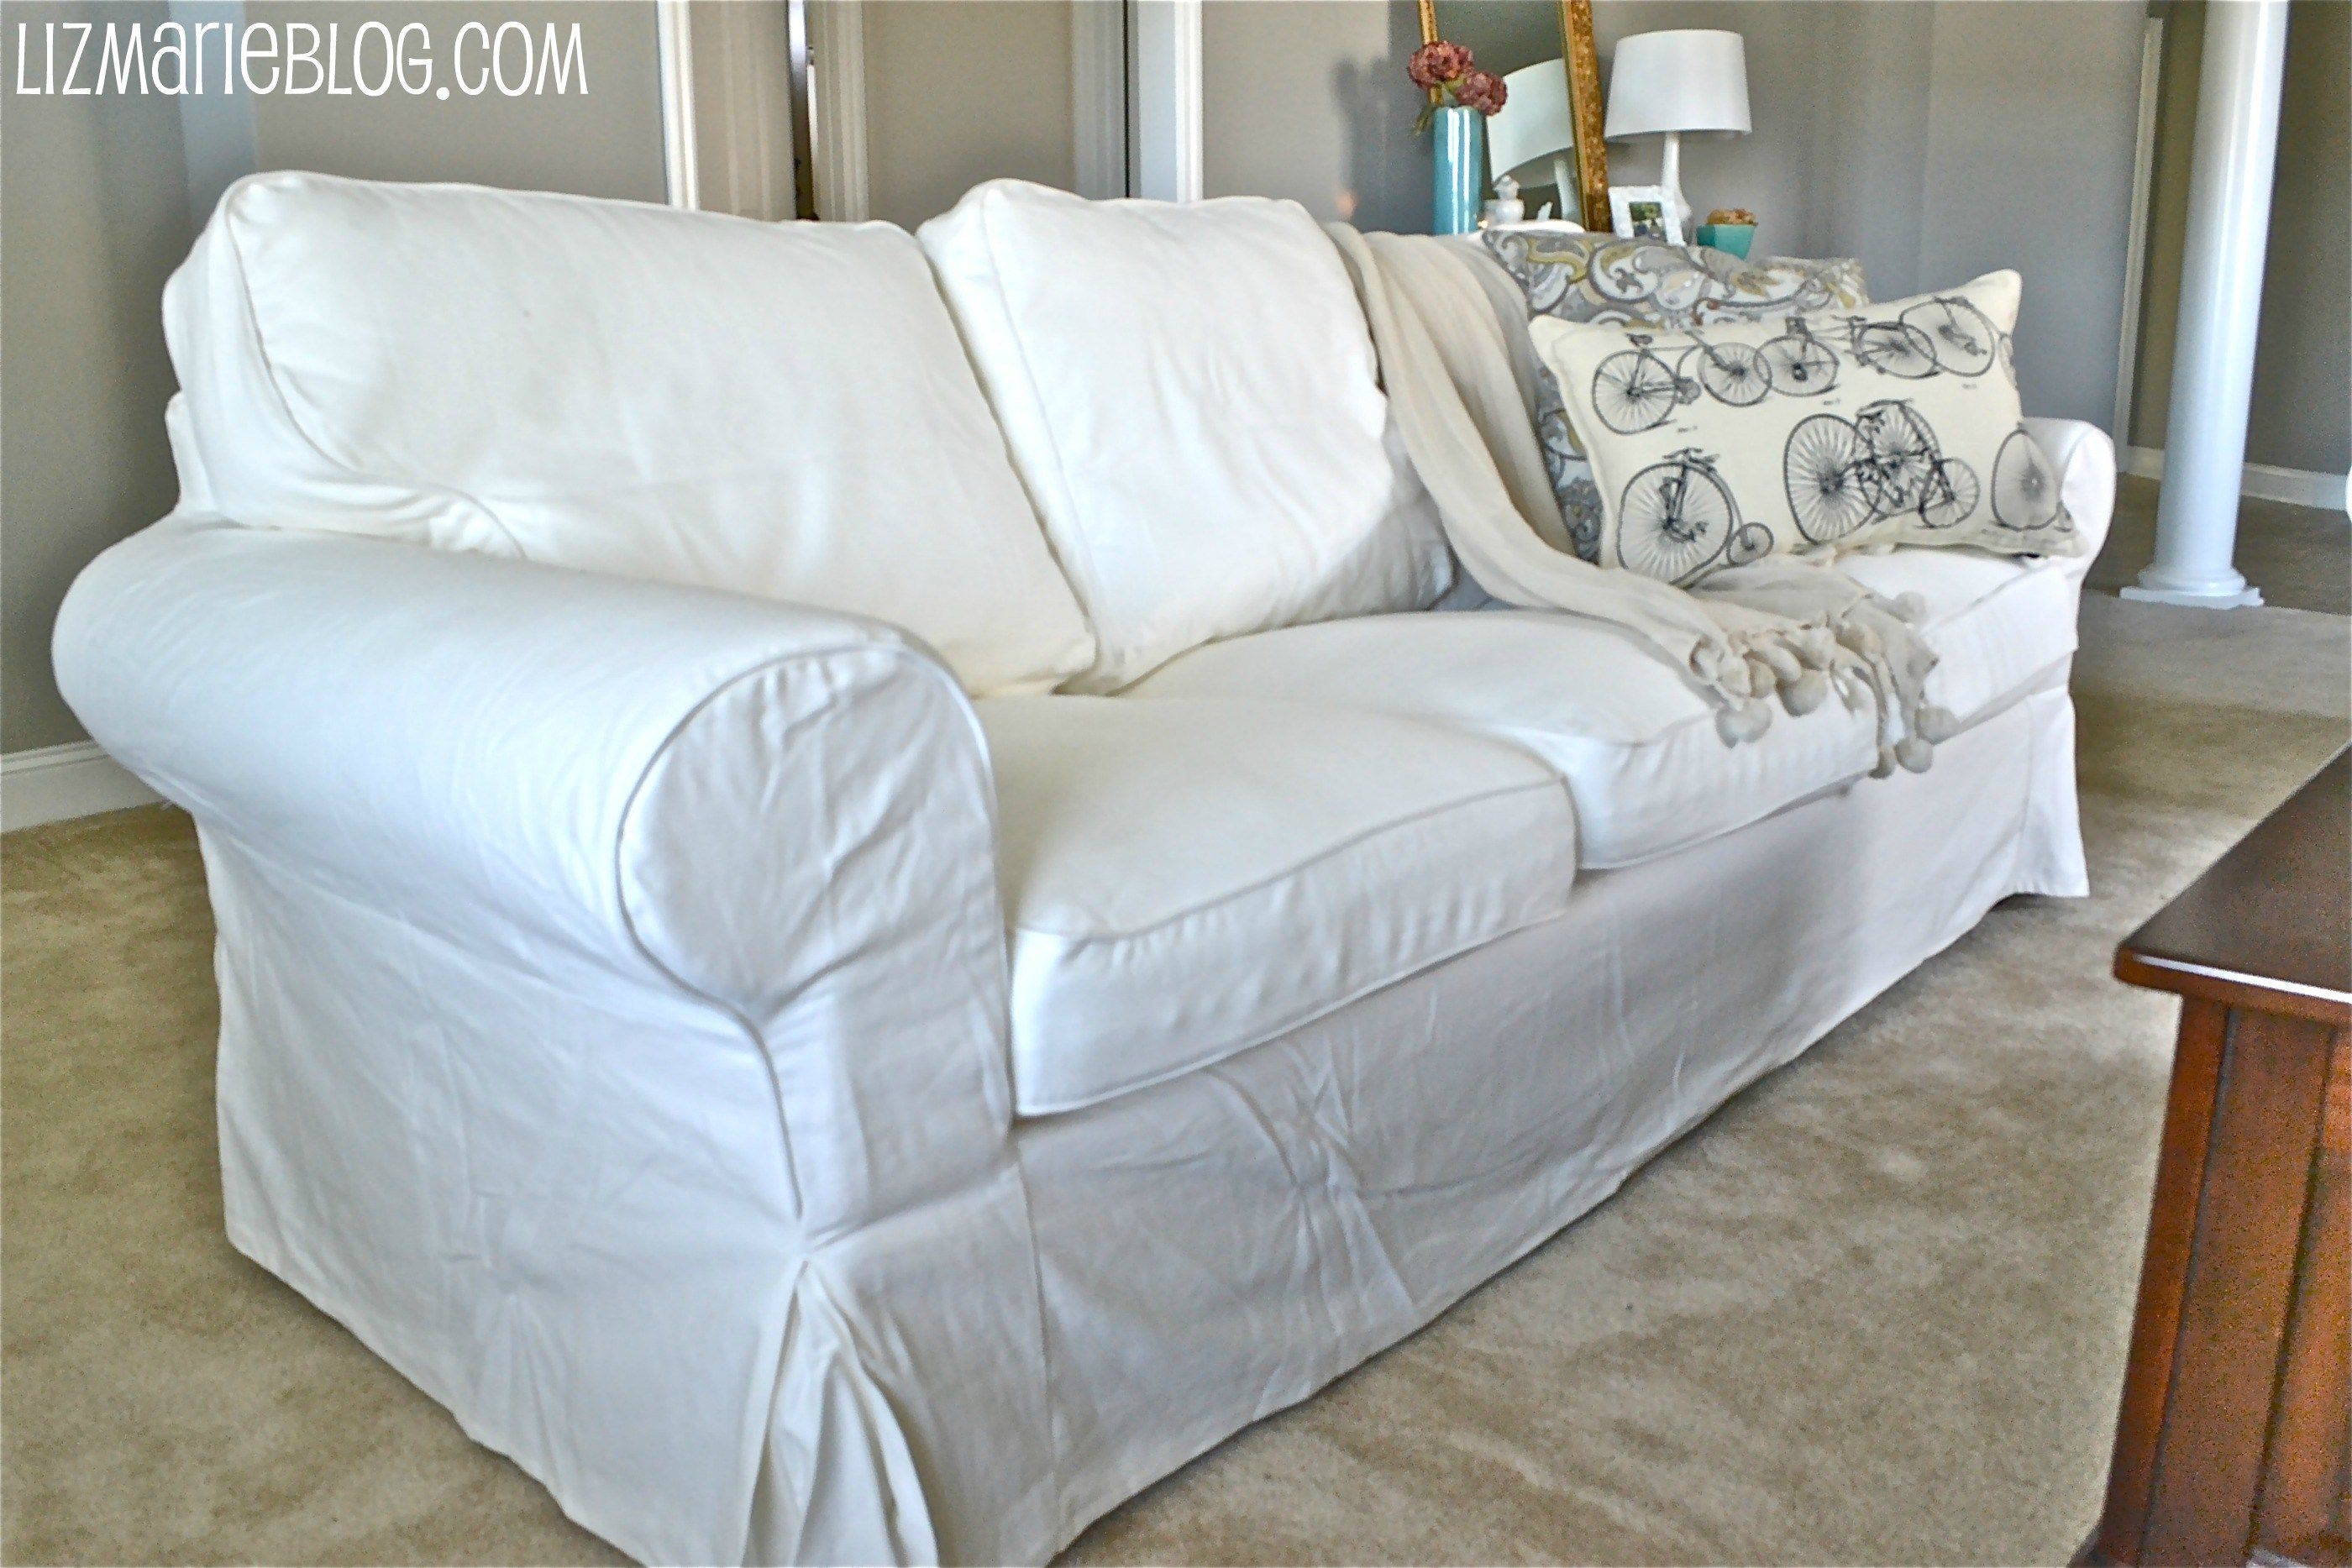 New White Slipcover Ikea Couches White couch cover